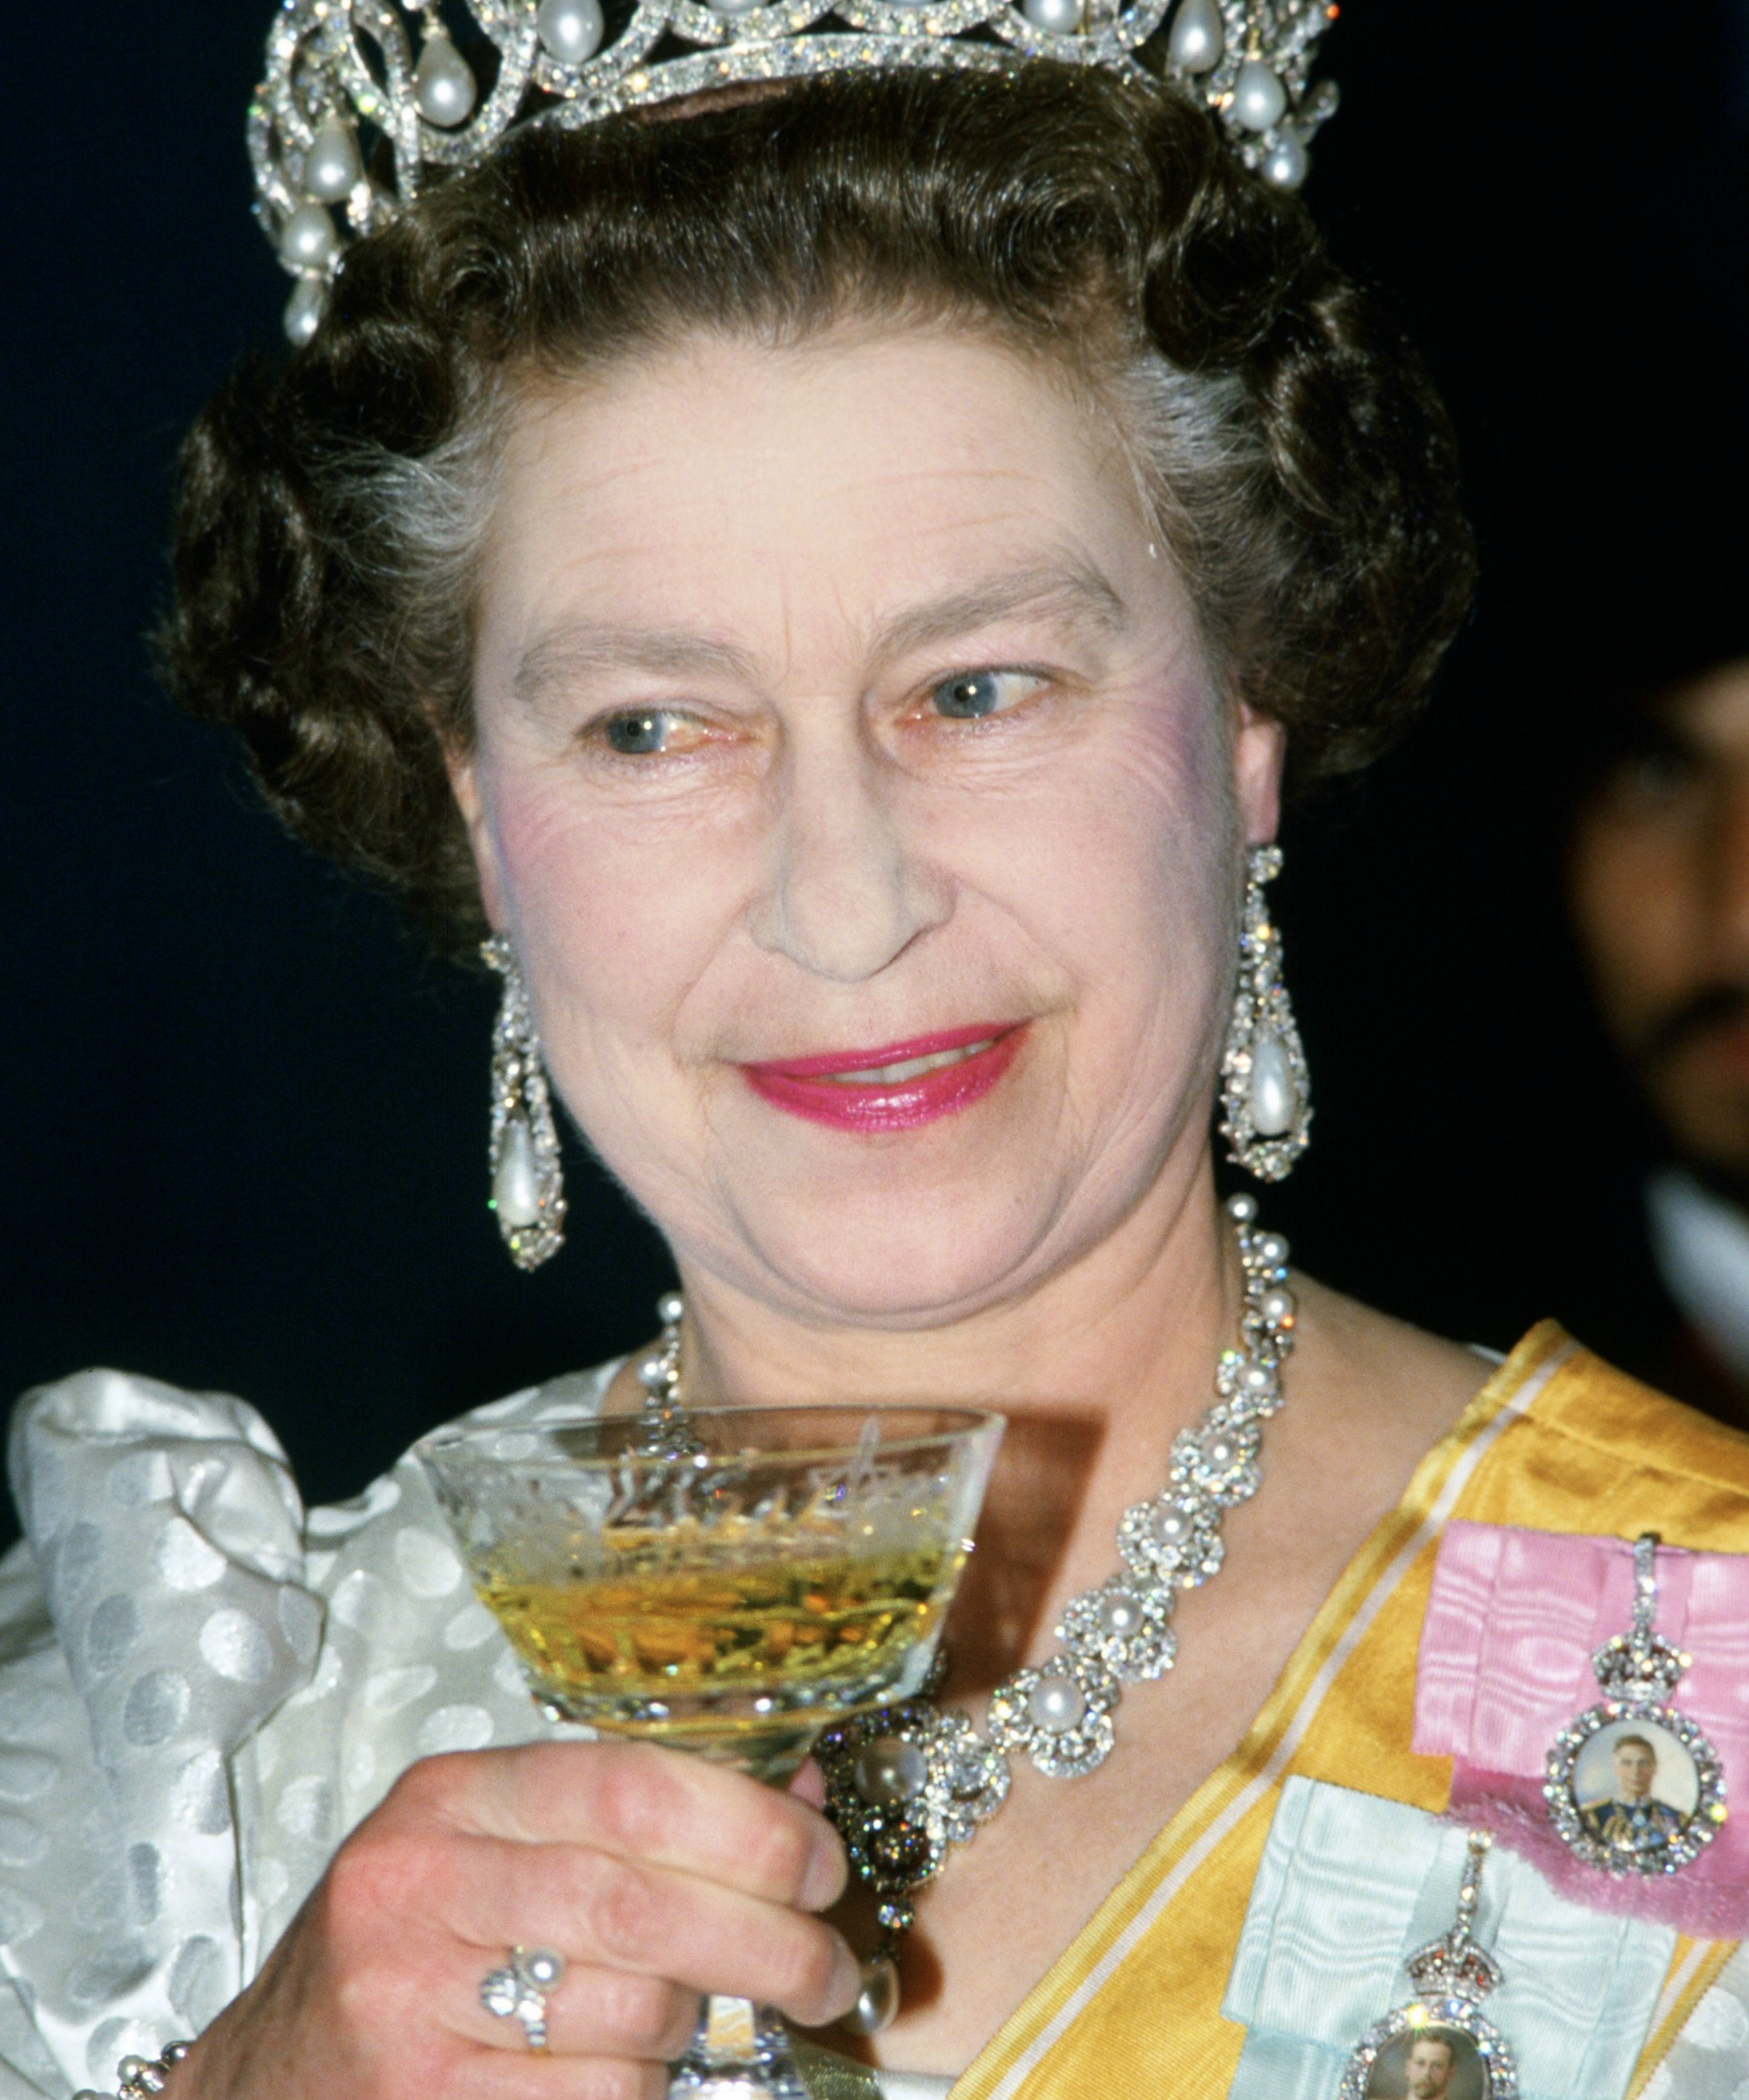 Revealed the secret of longevity 91-year-old British Queen Elizabeth